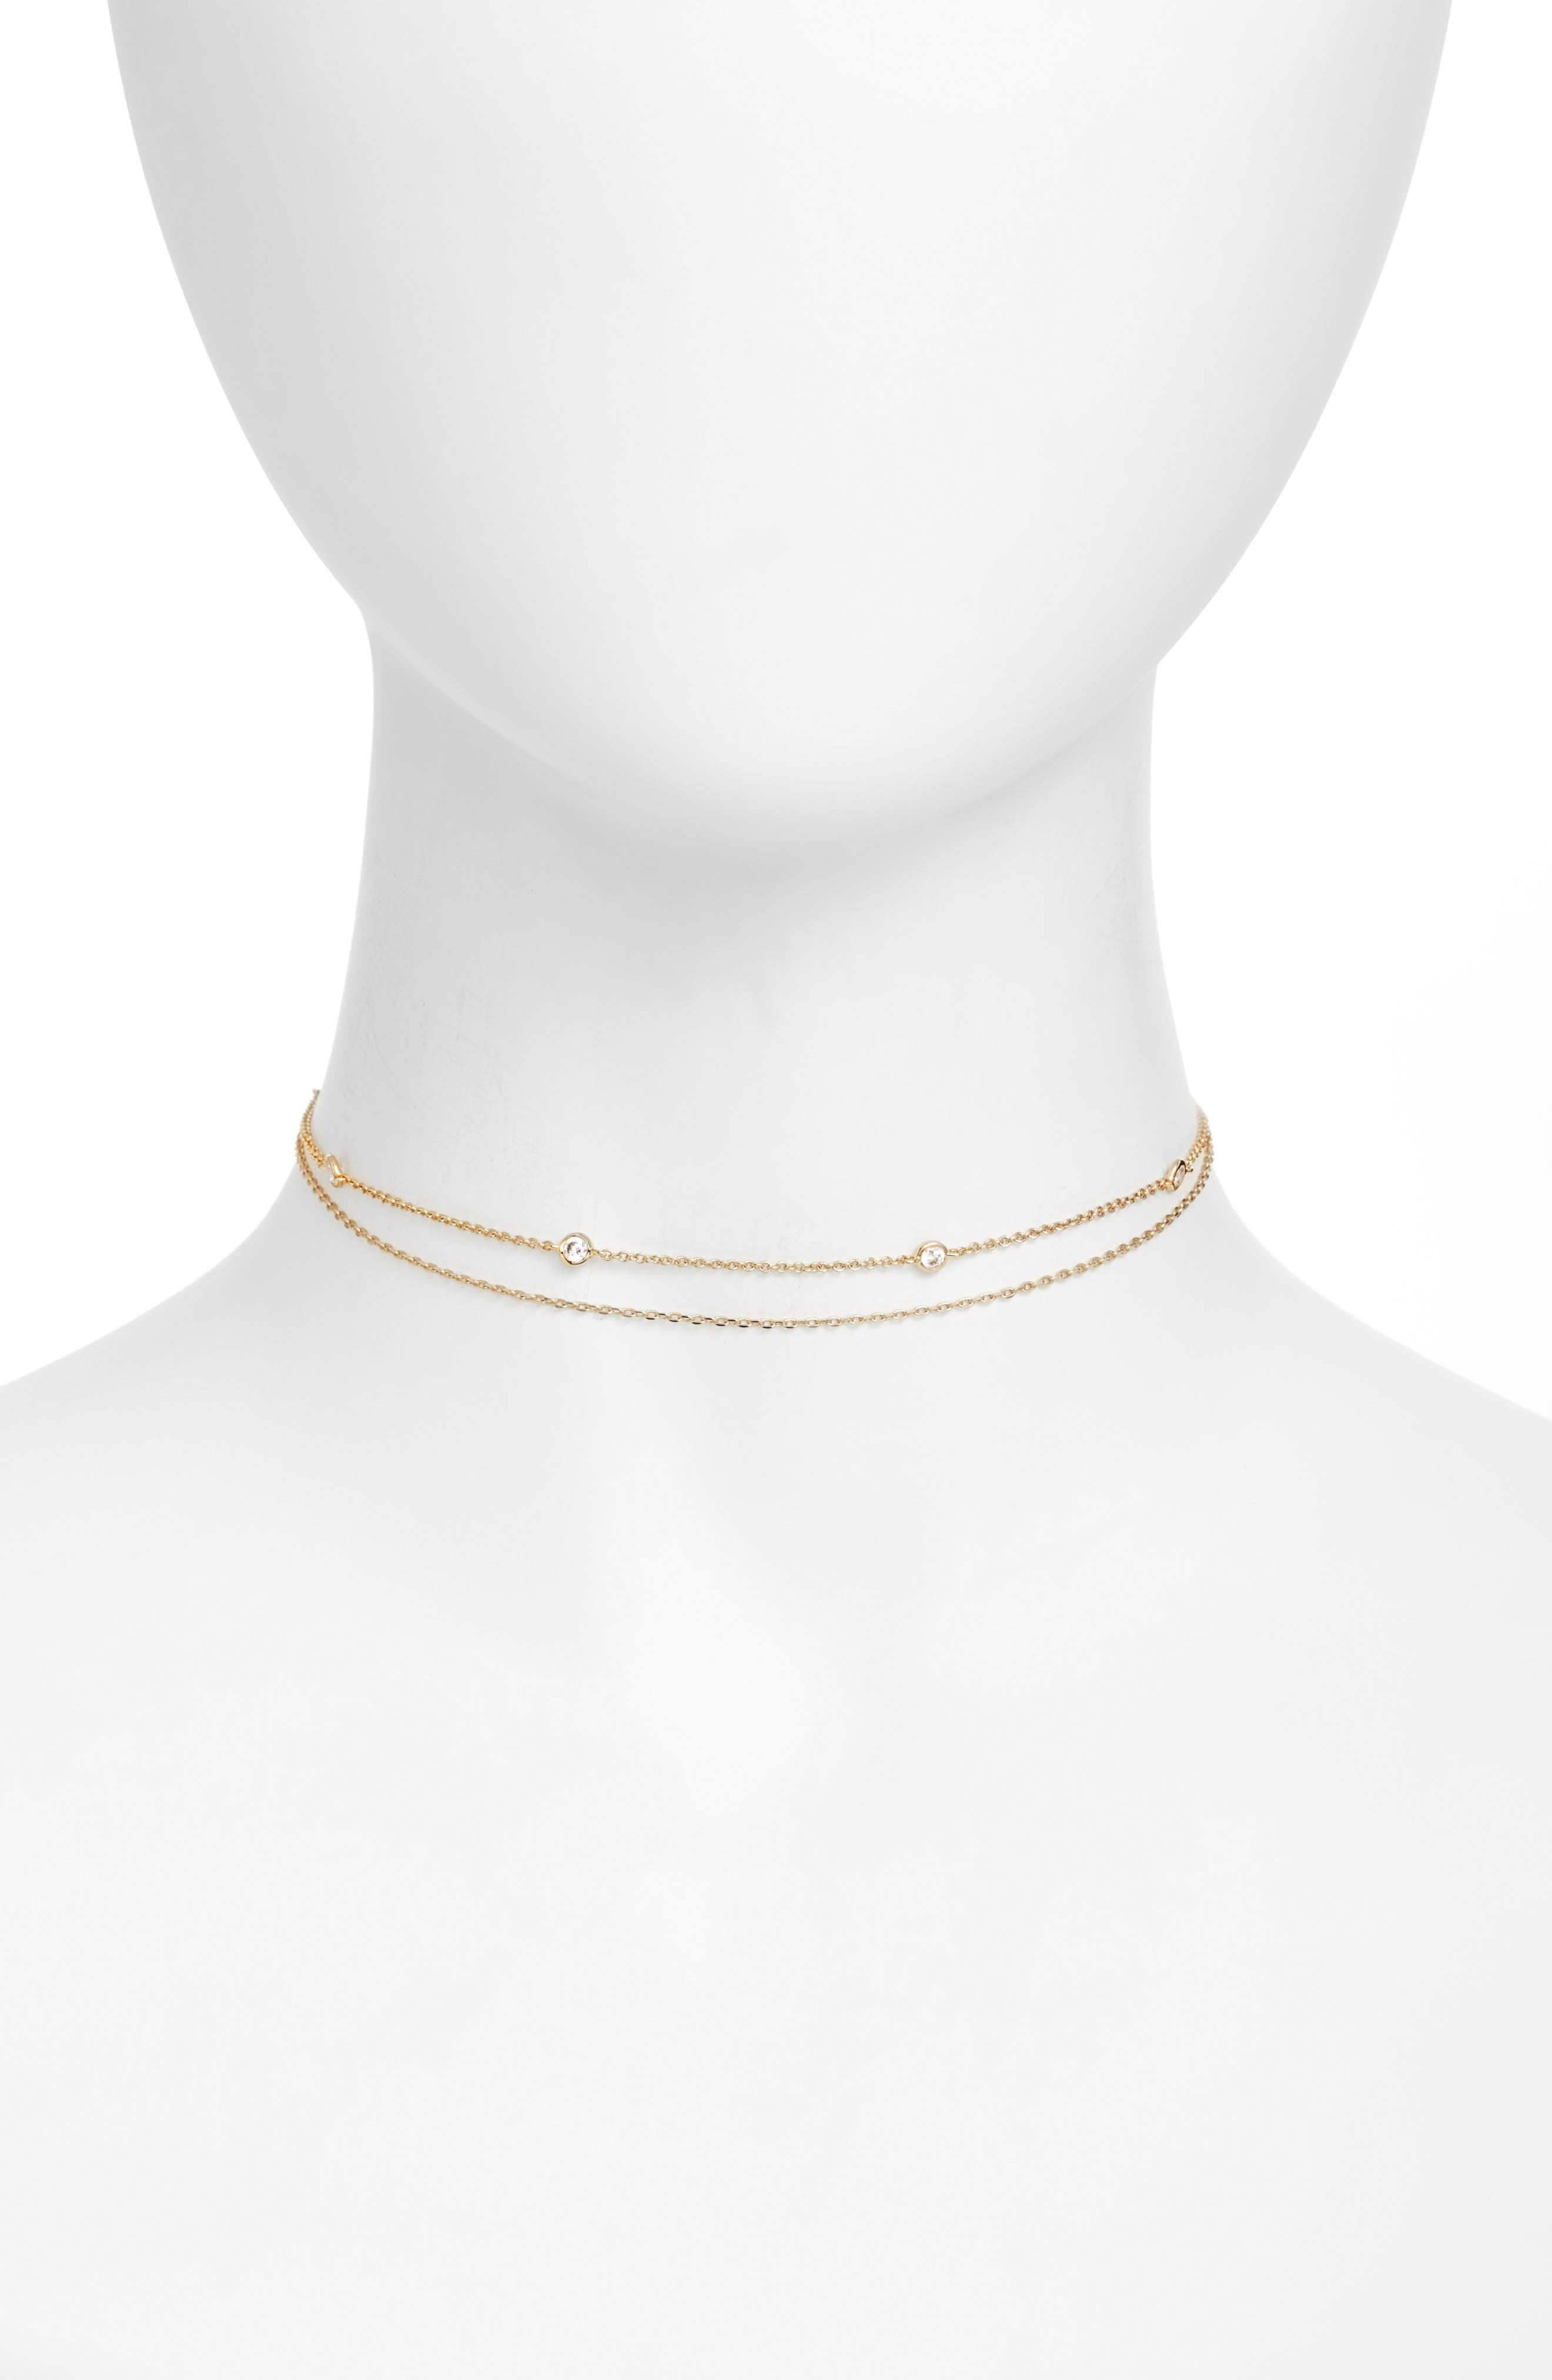 Jules Smith Crimson Chain Choker